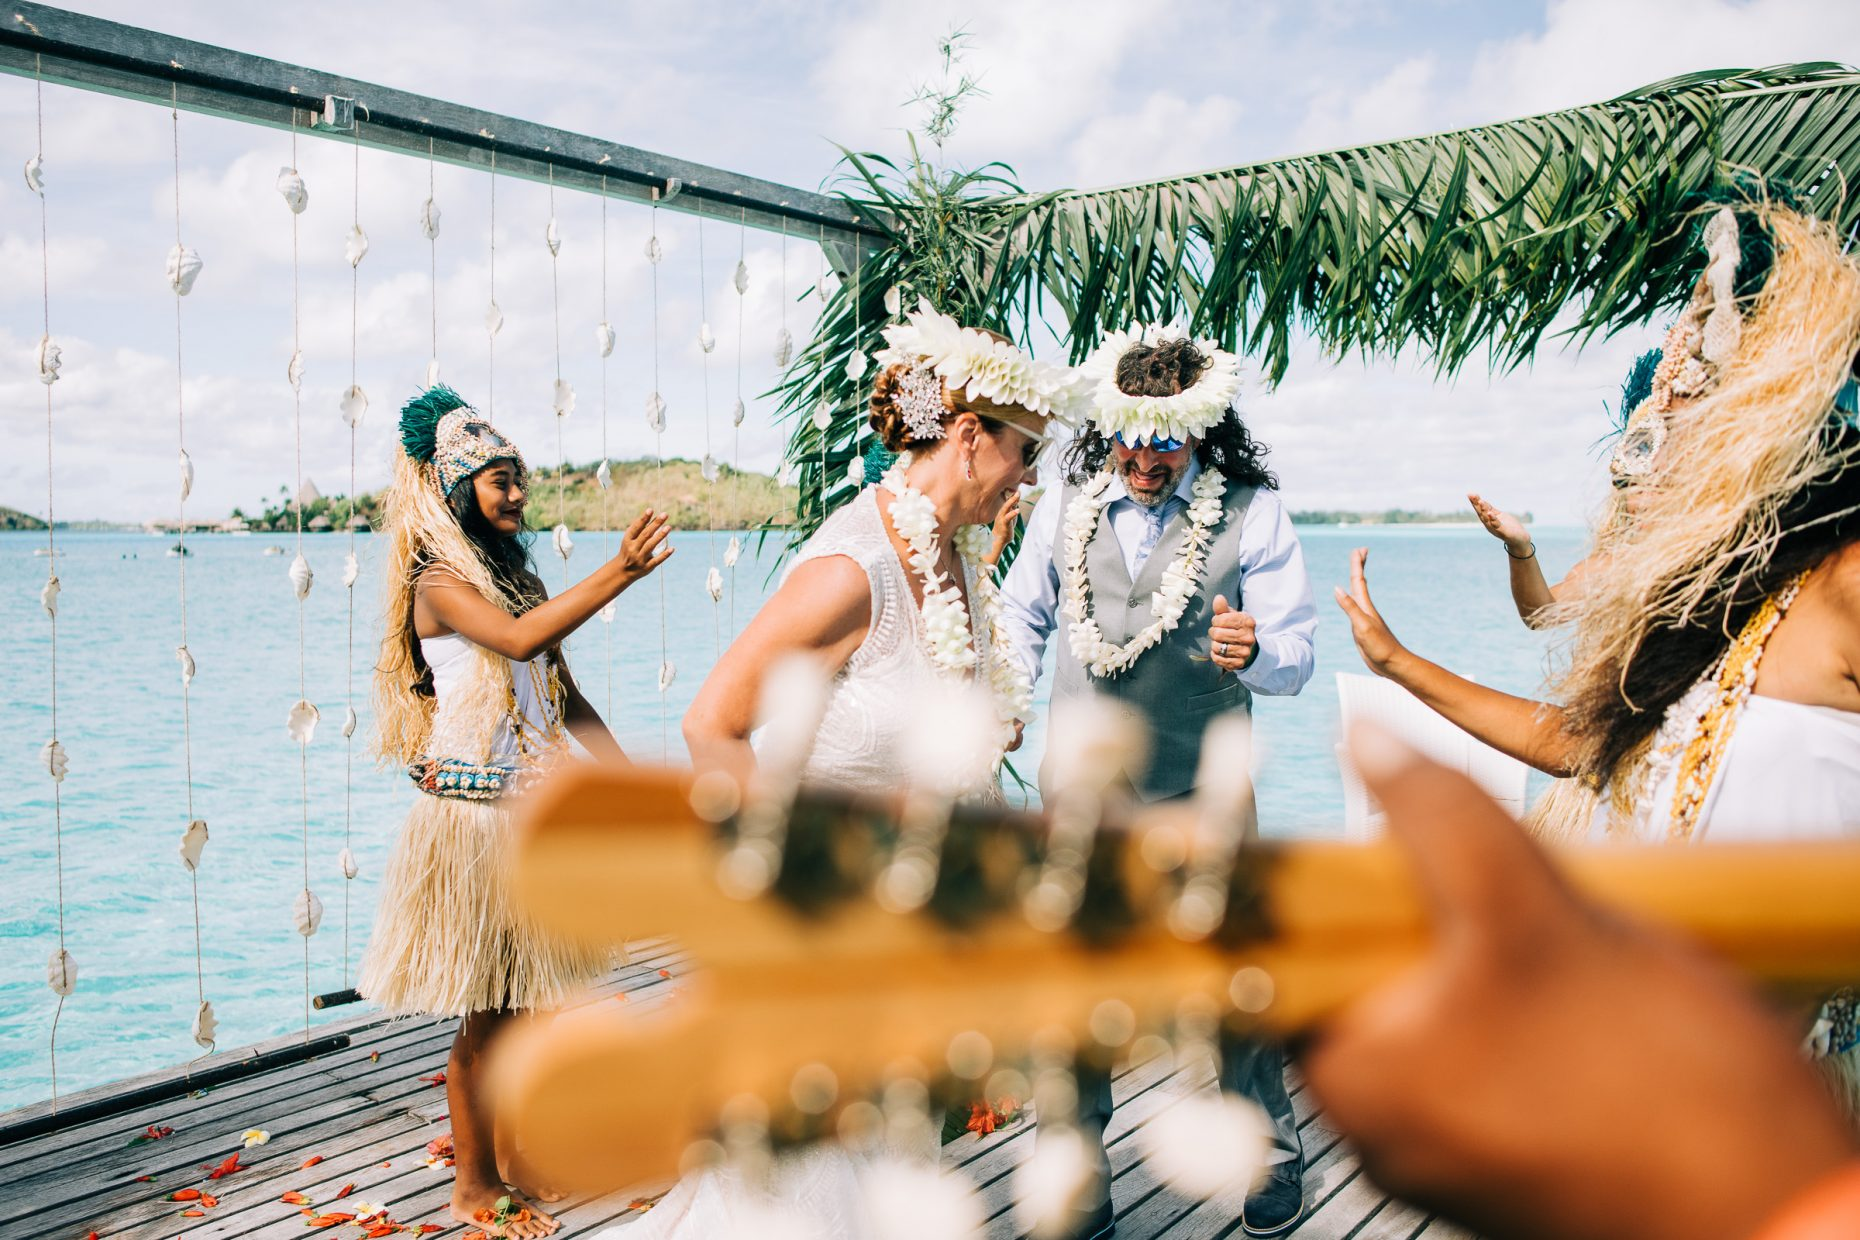 WEDDING PHOTOGRAPHY IN BORA Bora